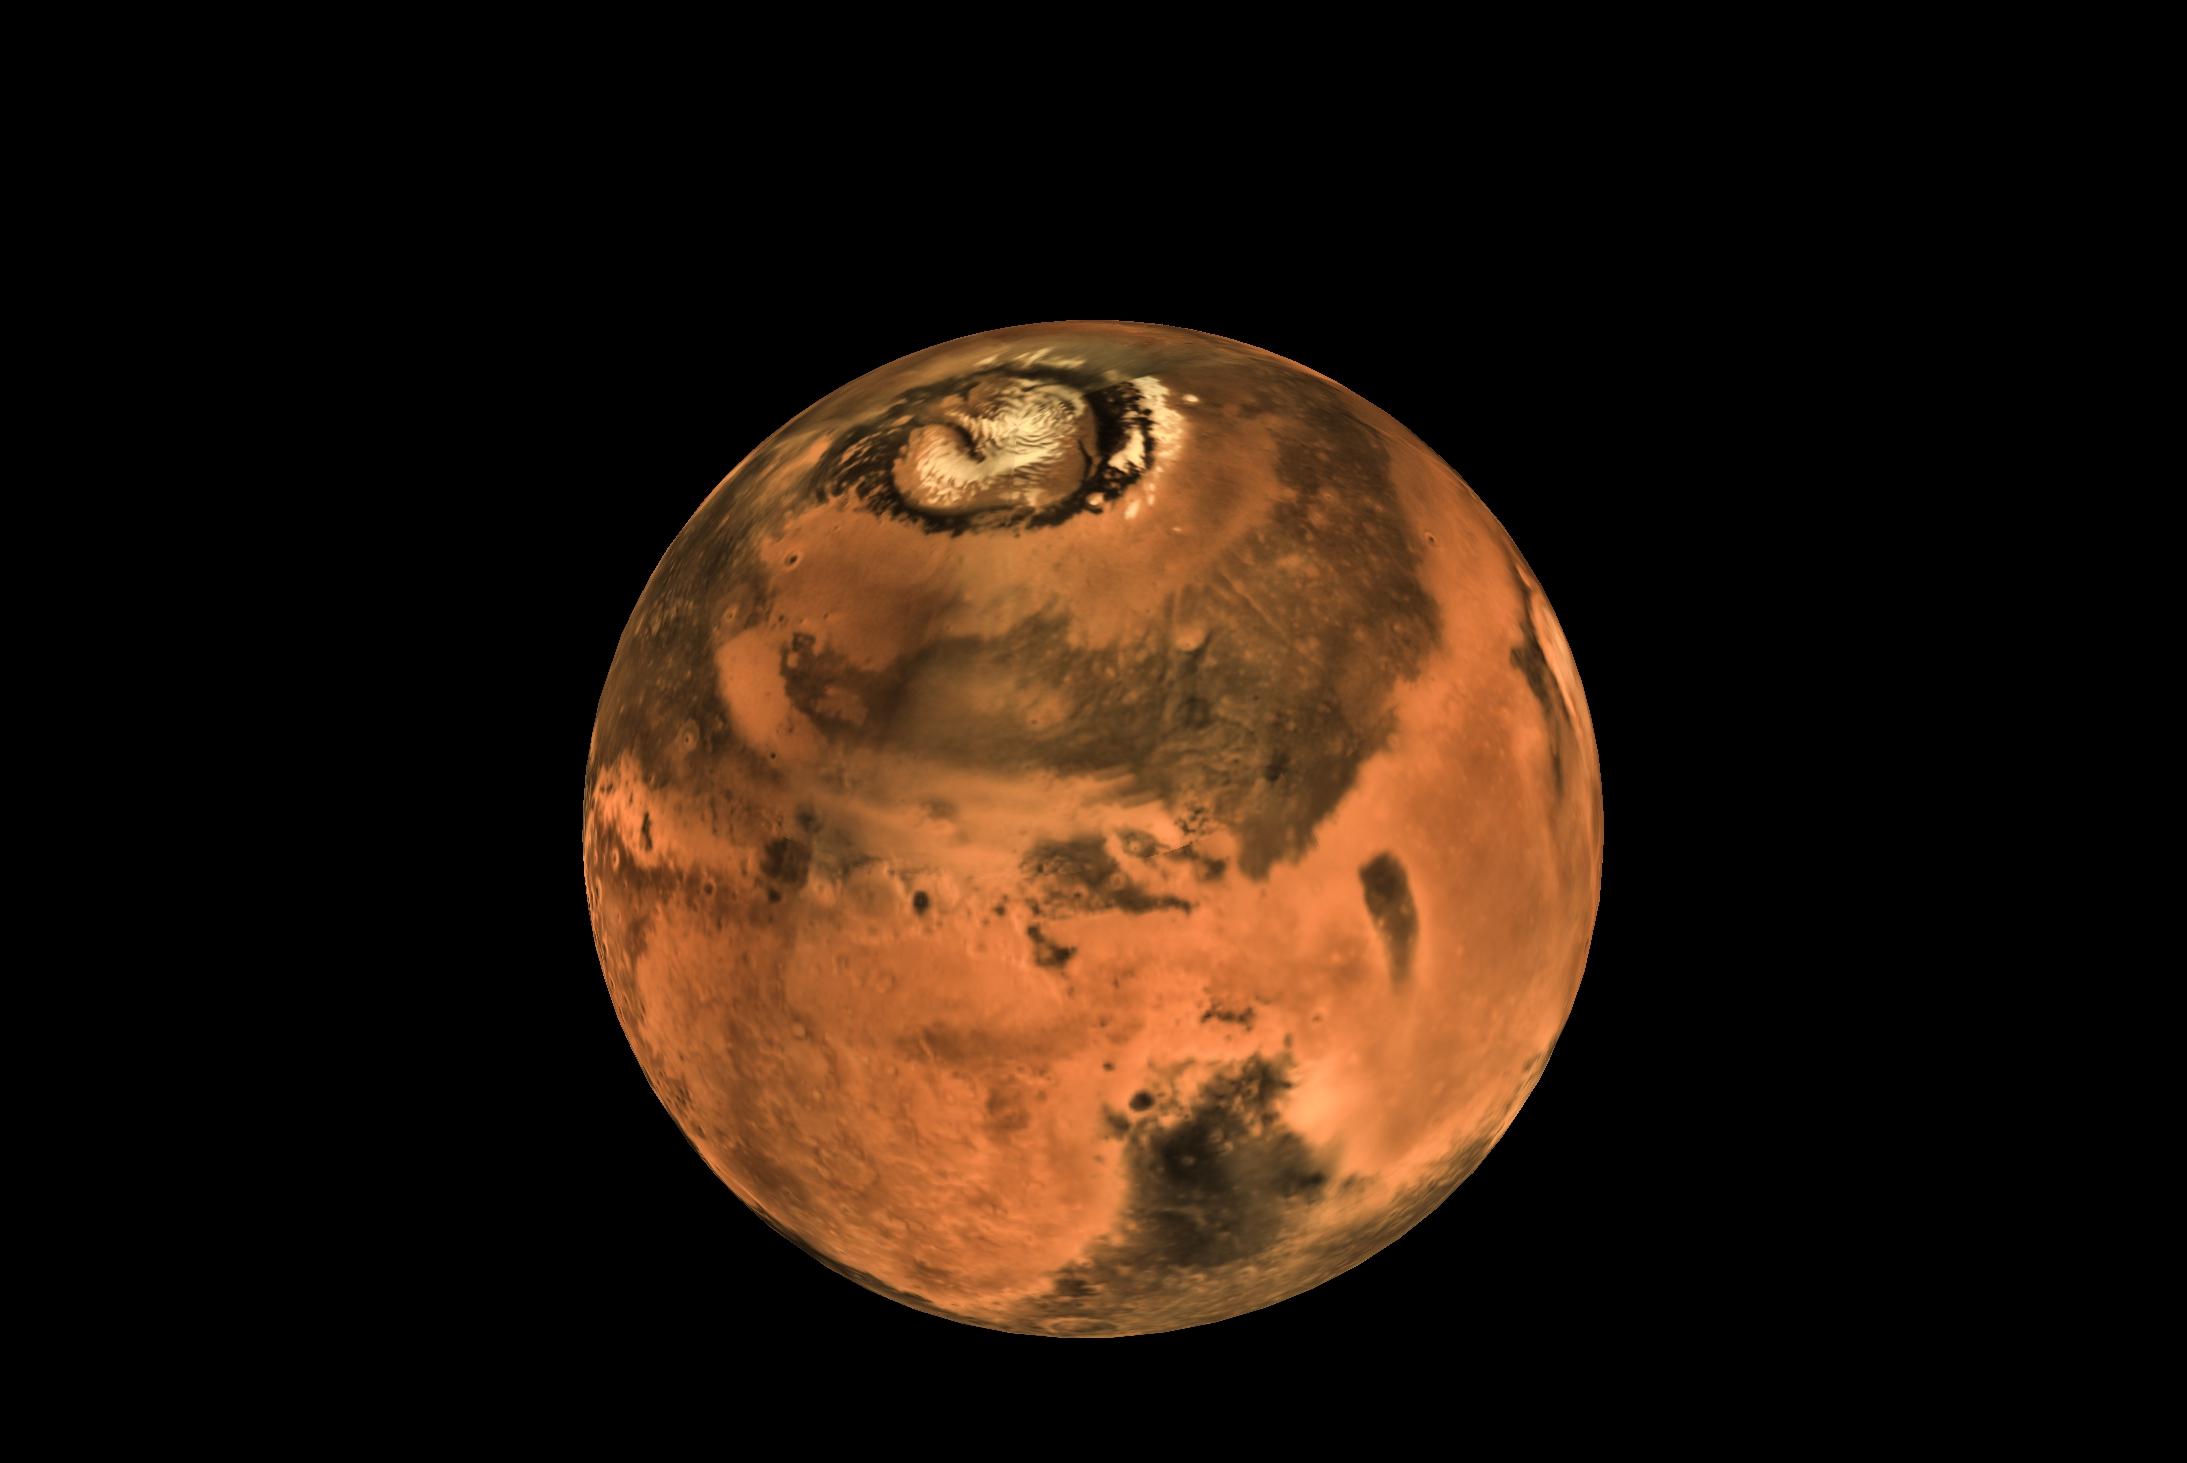 mars orbiter mission spacecraft isro more images